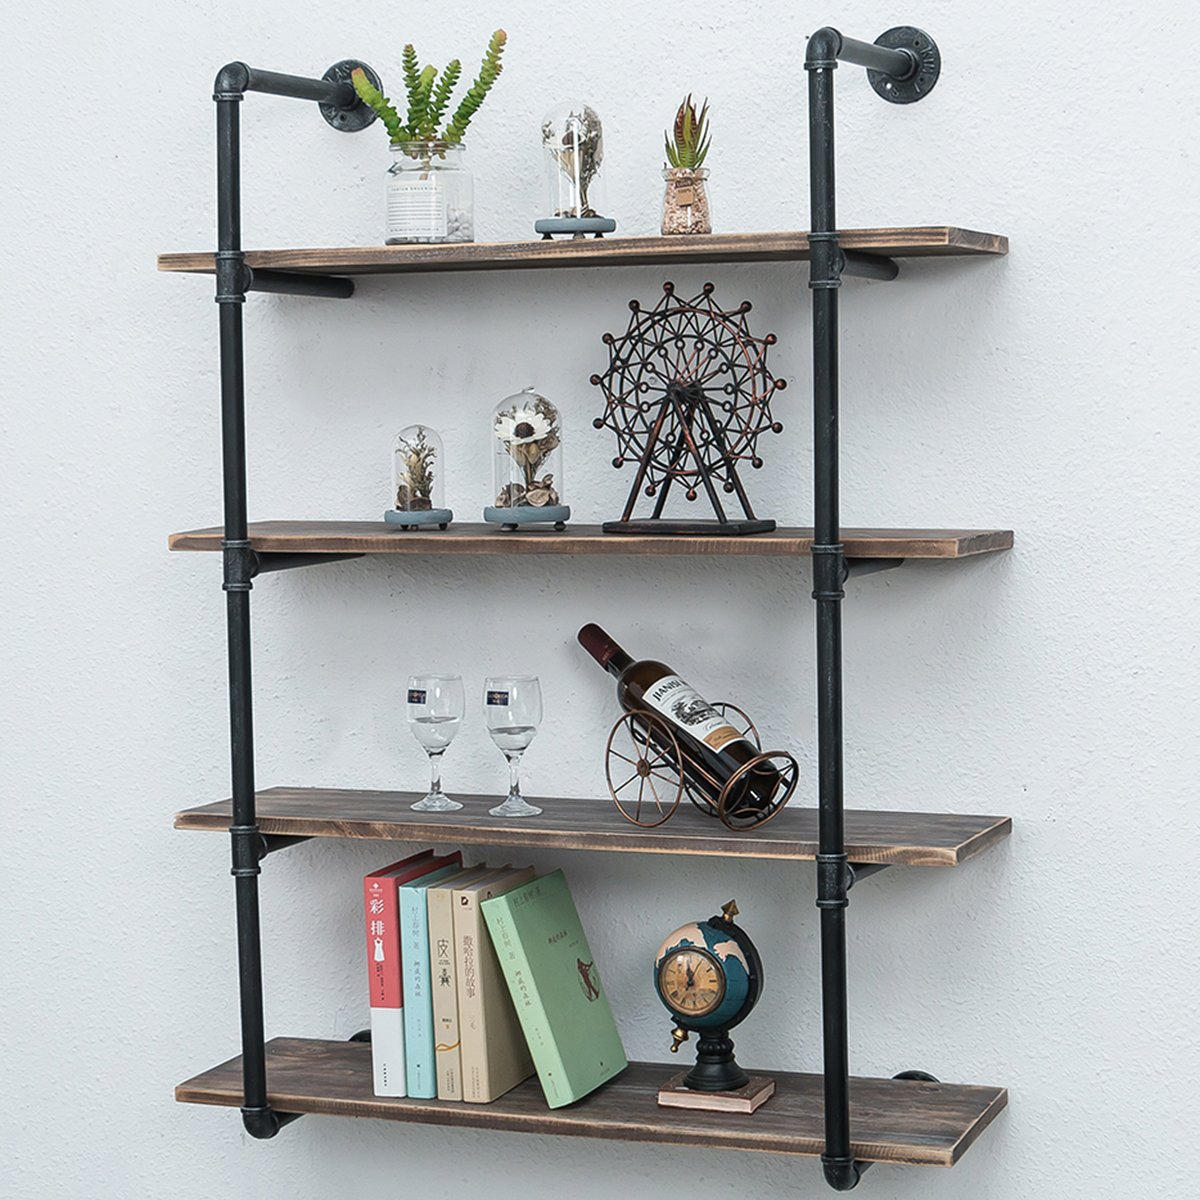 Industrial Pipe Shelves With Wood 4-tiers,rustic Wall